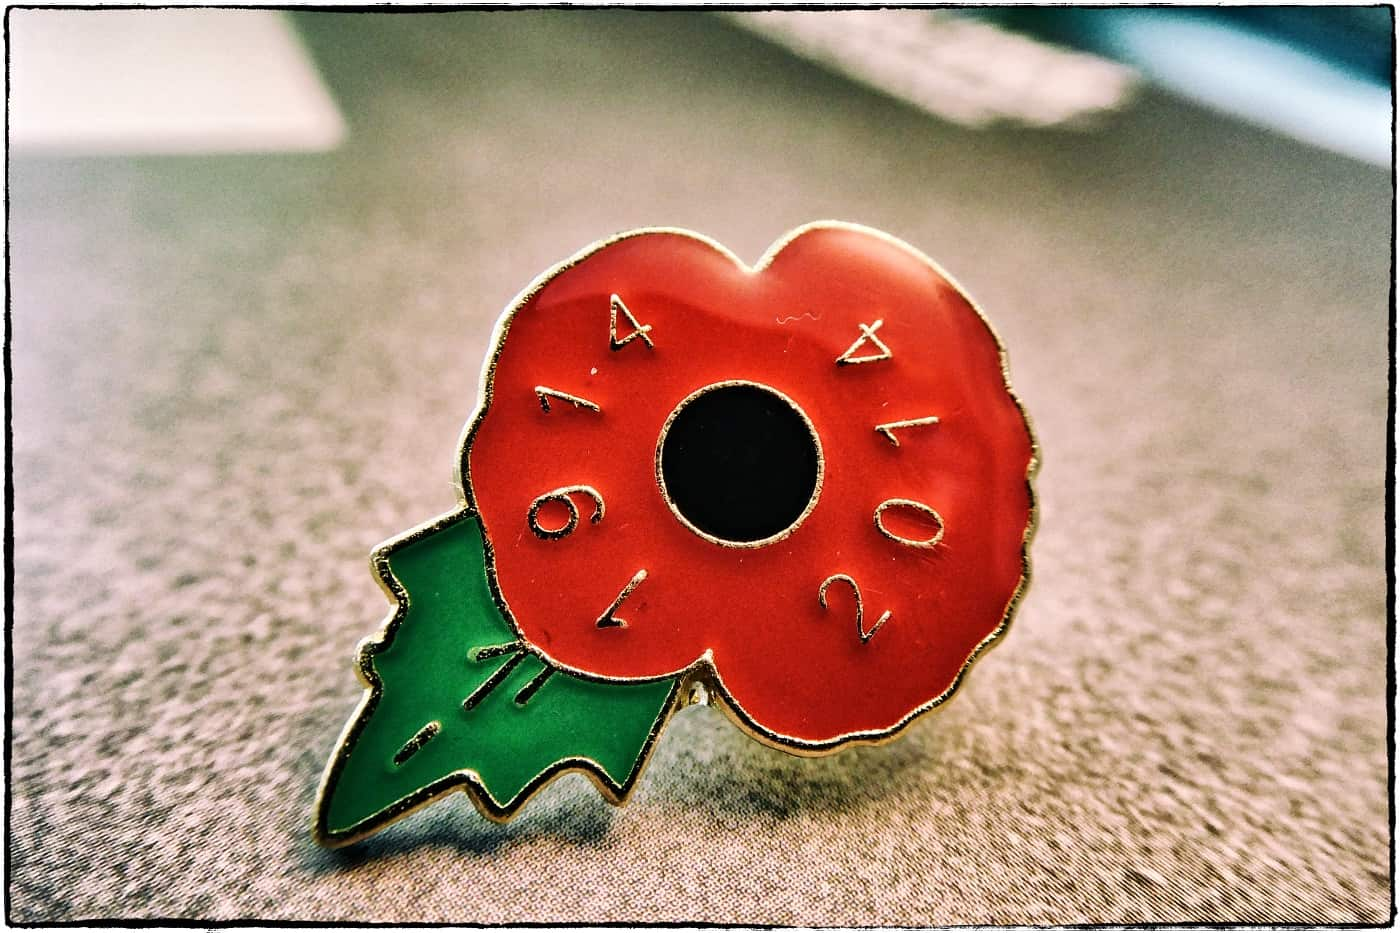 A remembrance day anniversary badge